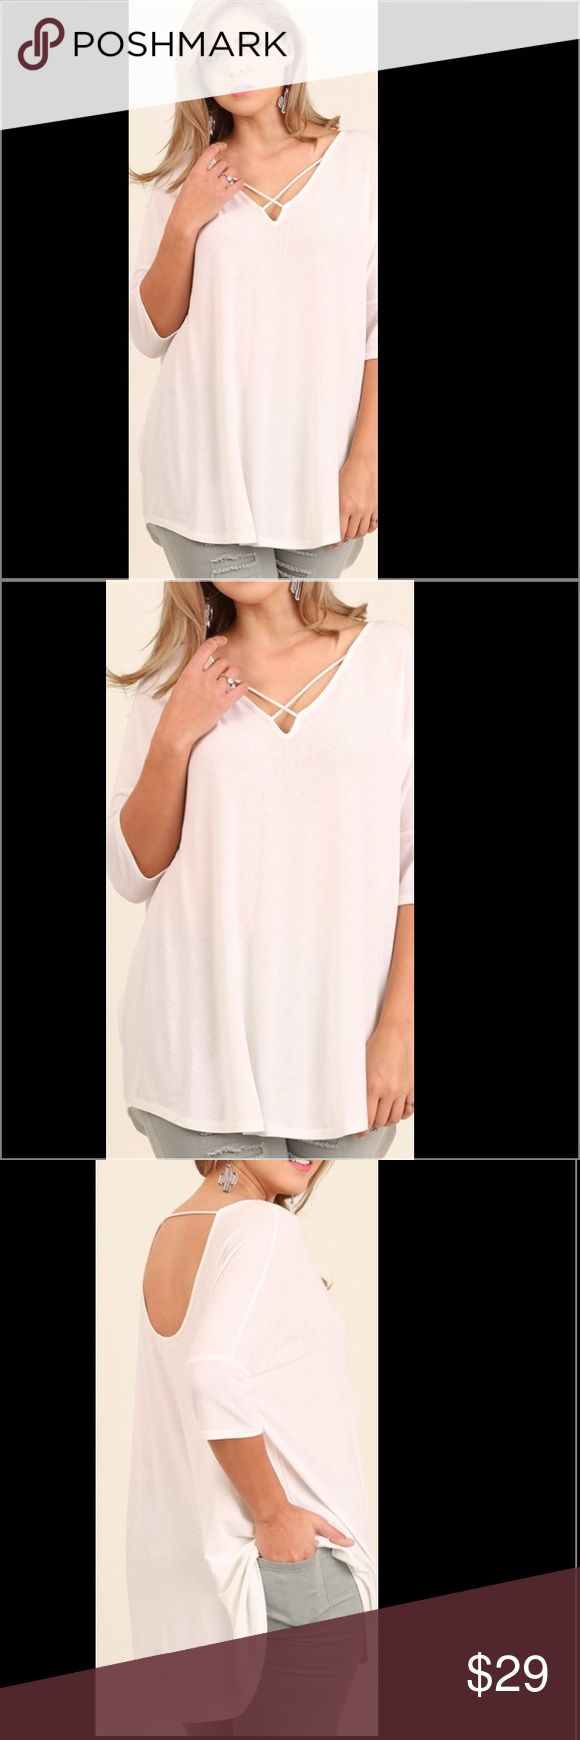 NWT PLUS SIZE strappy top shirt blouse Crisscross Front Tunic with Open Back Details, COTTON BLEND, Sizes: XL, XXL, XXL ✅ Limited quantities available. Get yours while they last. 💋 ships same day of purchase. 💃🏻 Tops Blouses